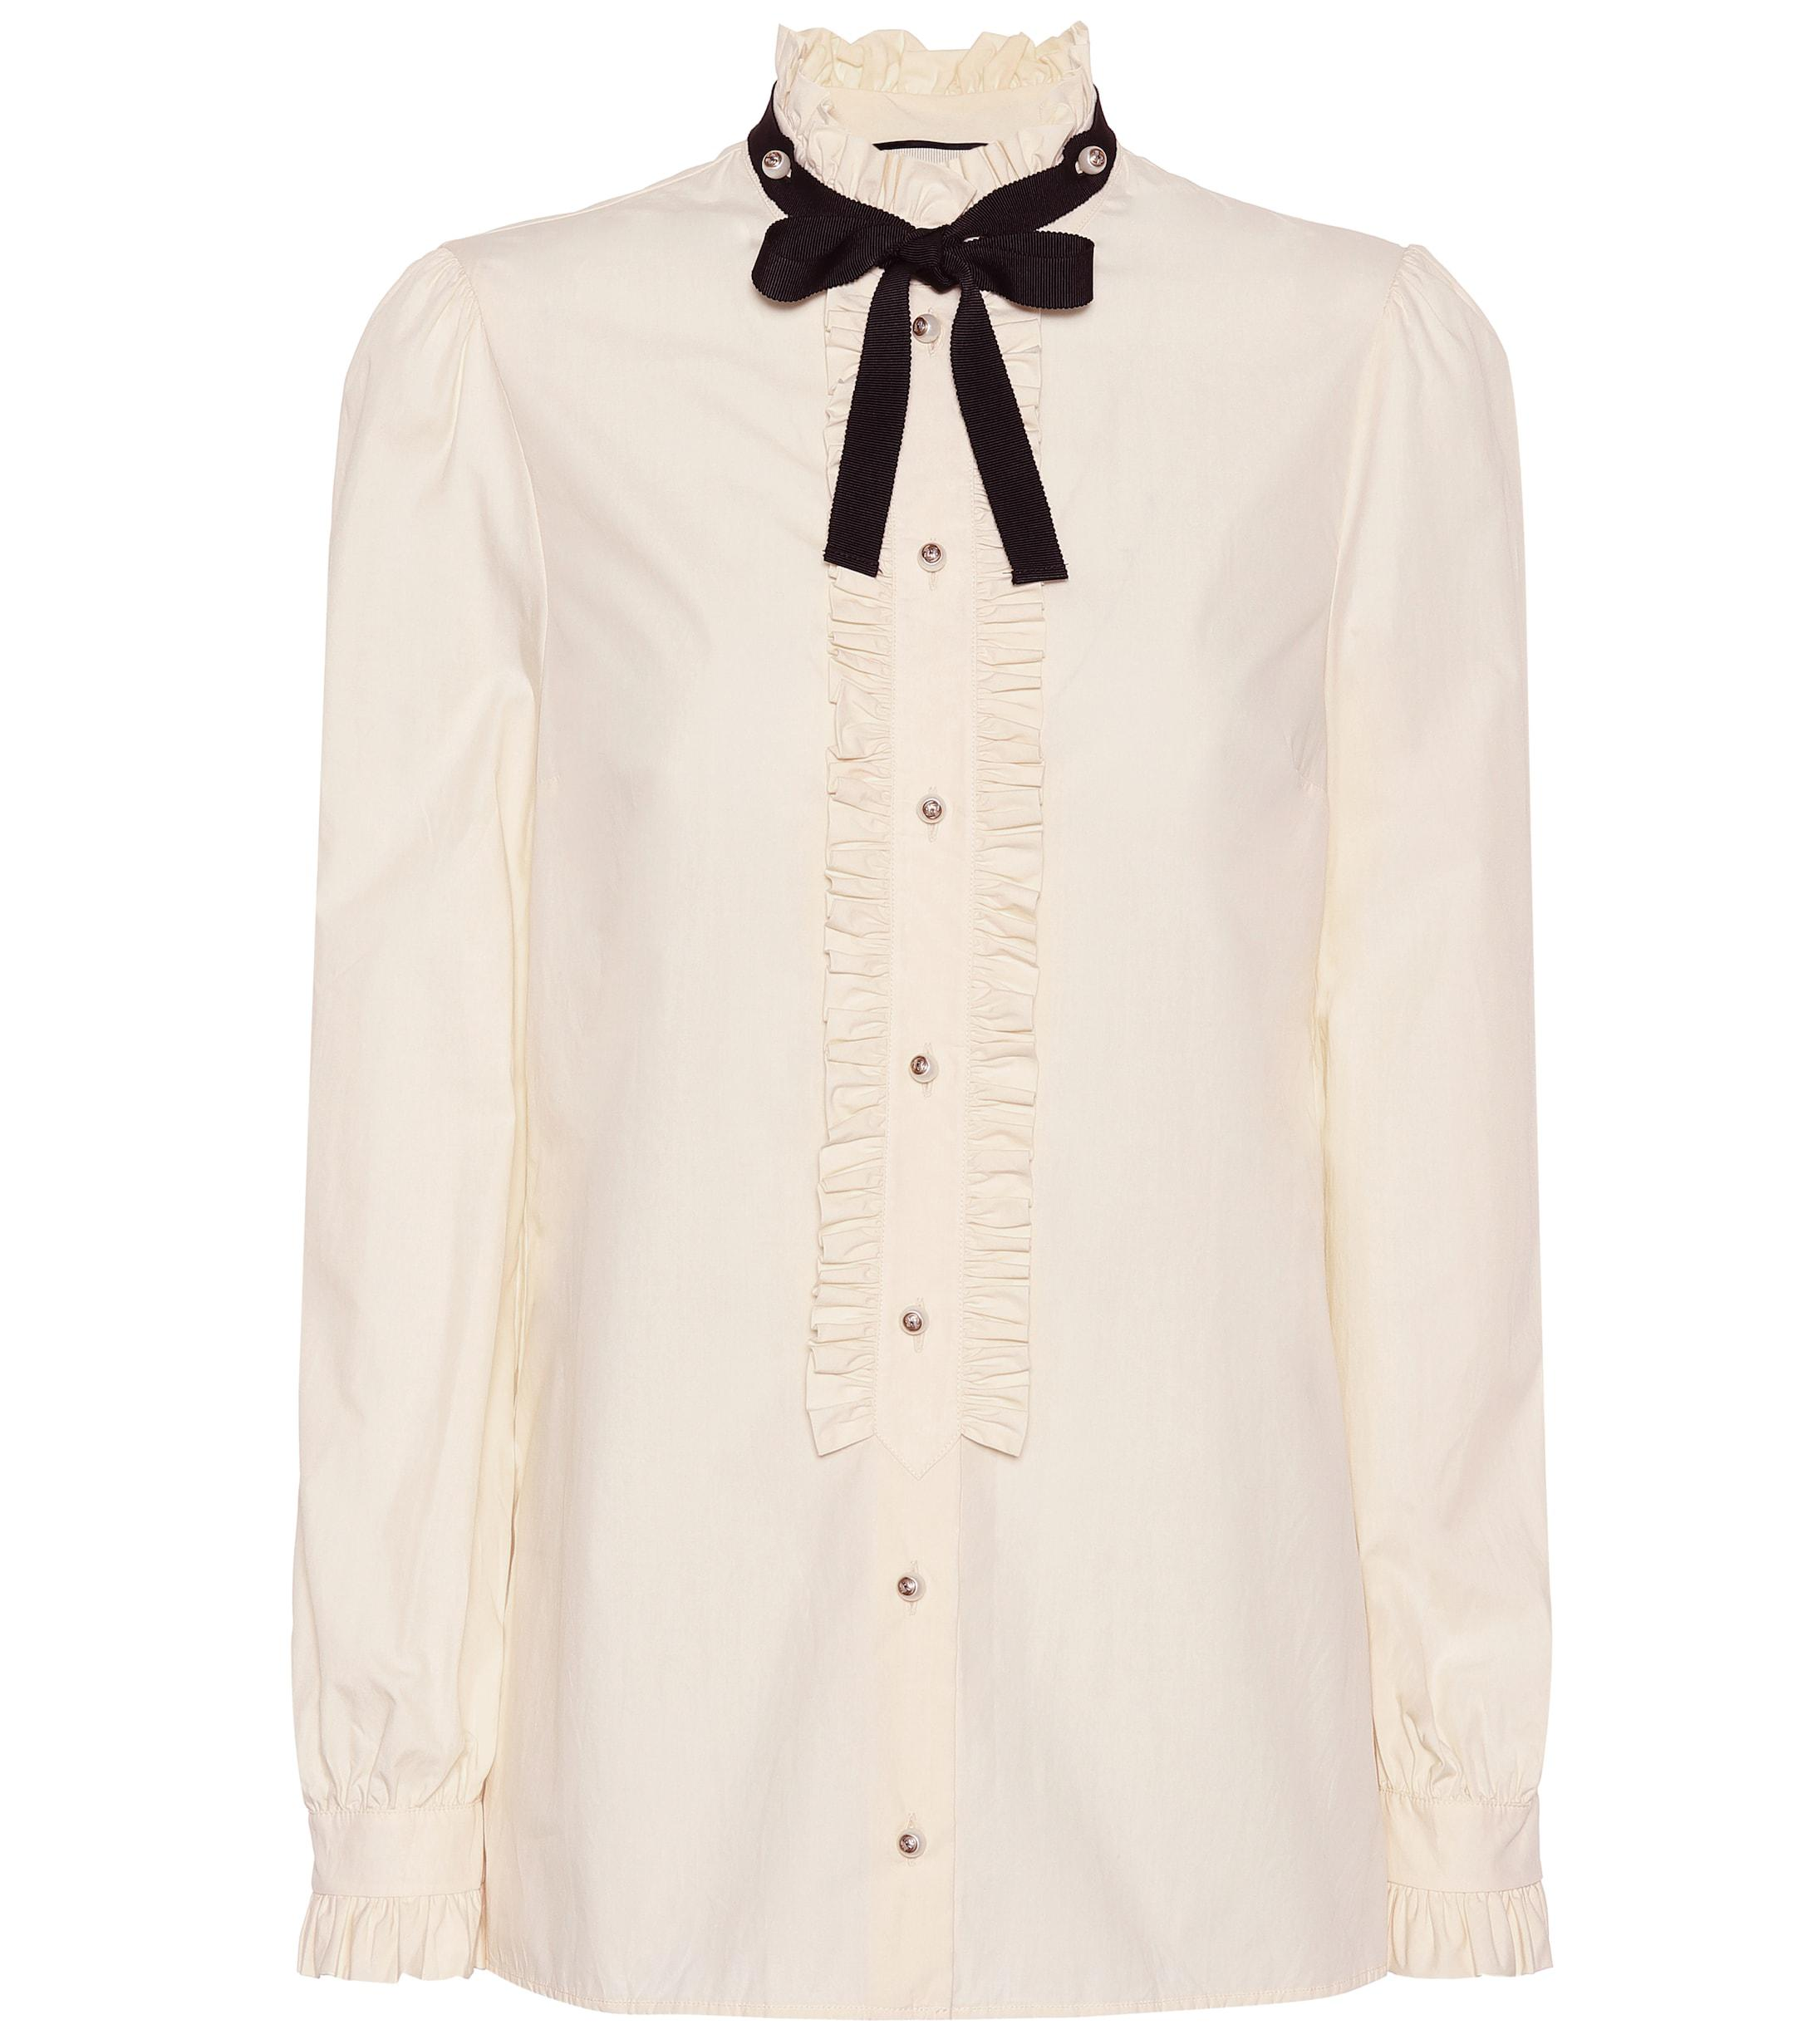 104996a3324584 Gucci. Women's Embellished Silk Blouse